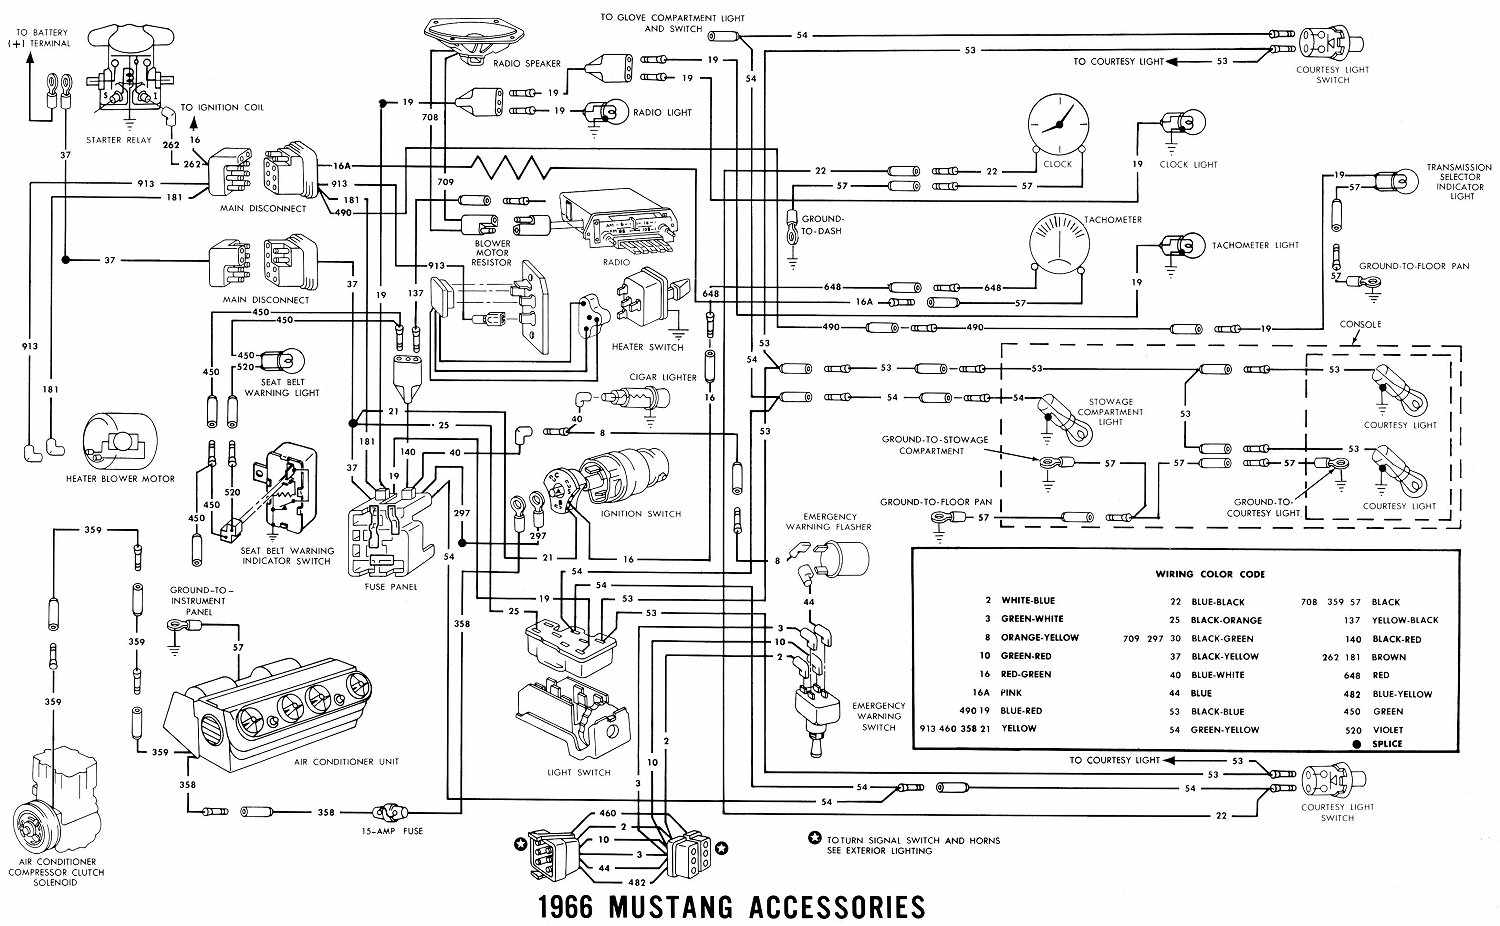 small resolution of wiring diagrams 911 1966 mustang complete accessories wiring diagram pac 80 goldwing wiring diagram 1966